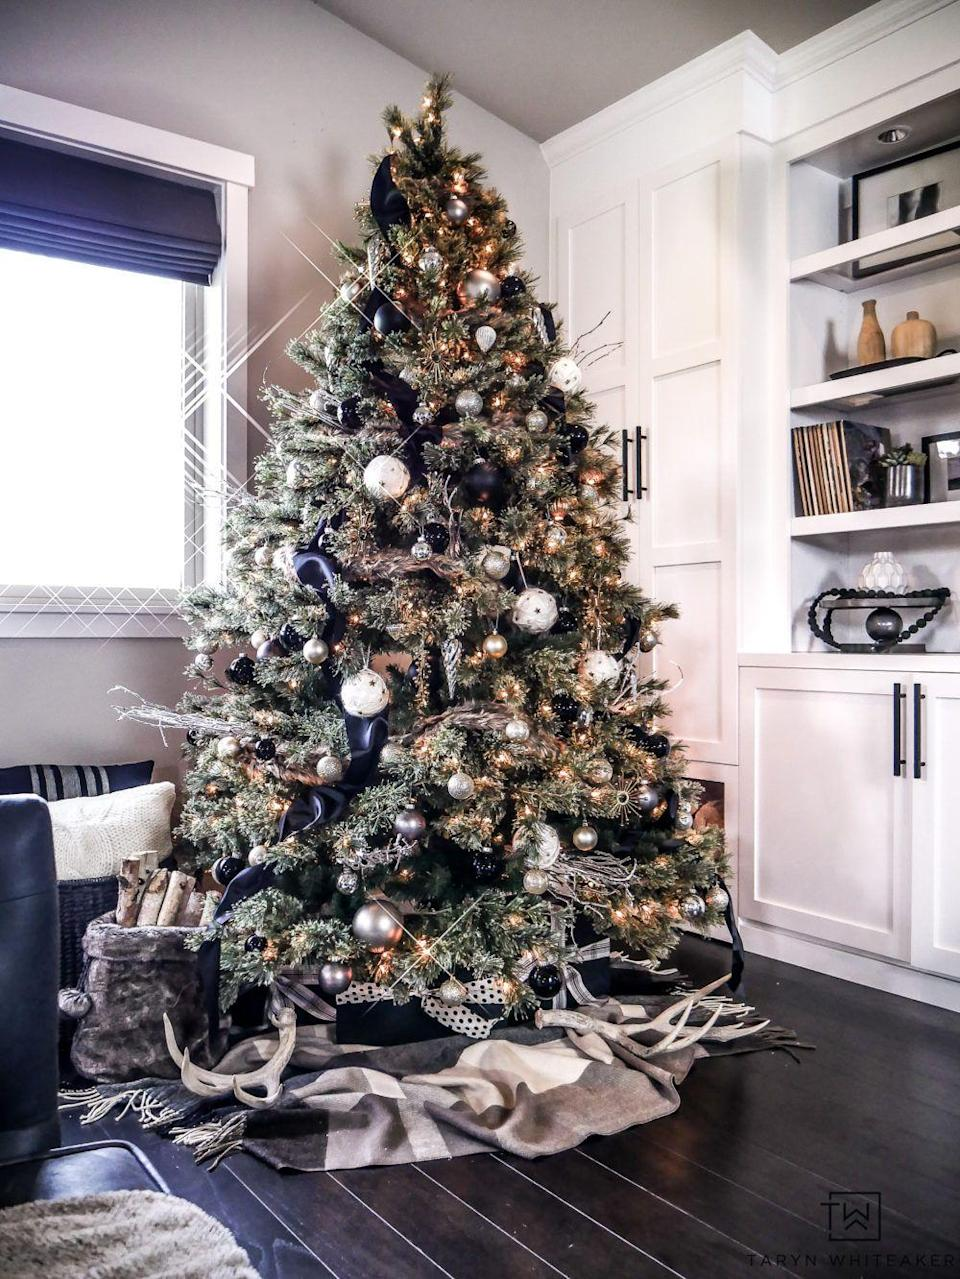 """<p>A black and gold tree is the picture of opulence, especially when you mix black matte and black glossy balls and incorporate plenty of sparkly pieces. </p><p><strong><em>Get the tutorial at <a href=""""https://tarynwhiteaker.com/rustic-modern-christmas-tree-2/"""" rel=""""nofollow noopener"""" target=""""_blank"""" data-ylk=""""slk:Taryn Whitaker Designs"""" class=""""link rapid-noclick-resp"""">Taryn Whitaker Designs</a>. </em></strong></p><p><a class=""""link rapid-noclick-resp"""" href=""""https://www.amazon.com/Humphreys-Craft-Non-Toxic-Decorative-Colorful/dp/B07X8FFRGM?tag=syn-yahoo-20&ascsubtag=%5Bartid%7C10070.g.2025%5Bsrc%7Cyahoo-us"""" rel=""""nofollow noopener"""" target=""""_blank"""" data-ylk=""""slk:SHOP BLACK RIBBON"""">SHOP BLACK RIBBON </a></p>"""